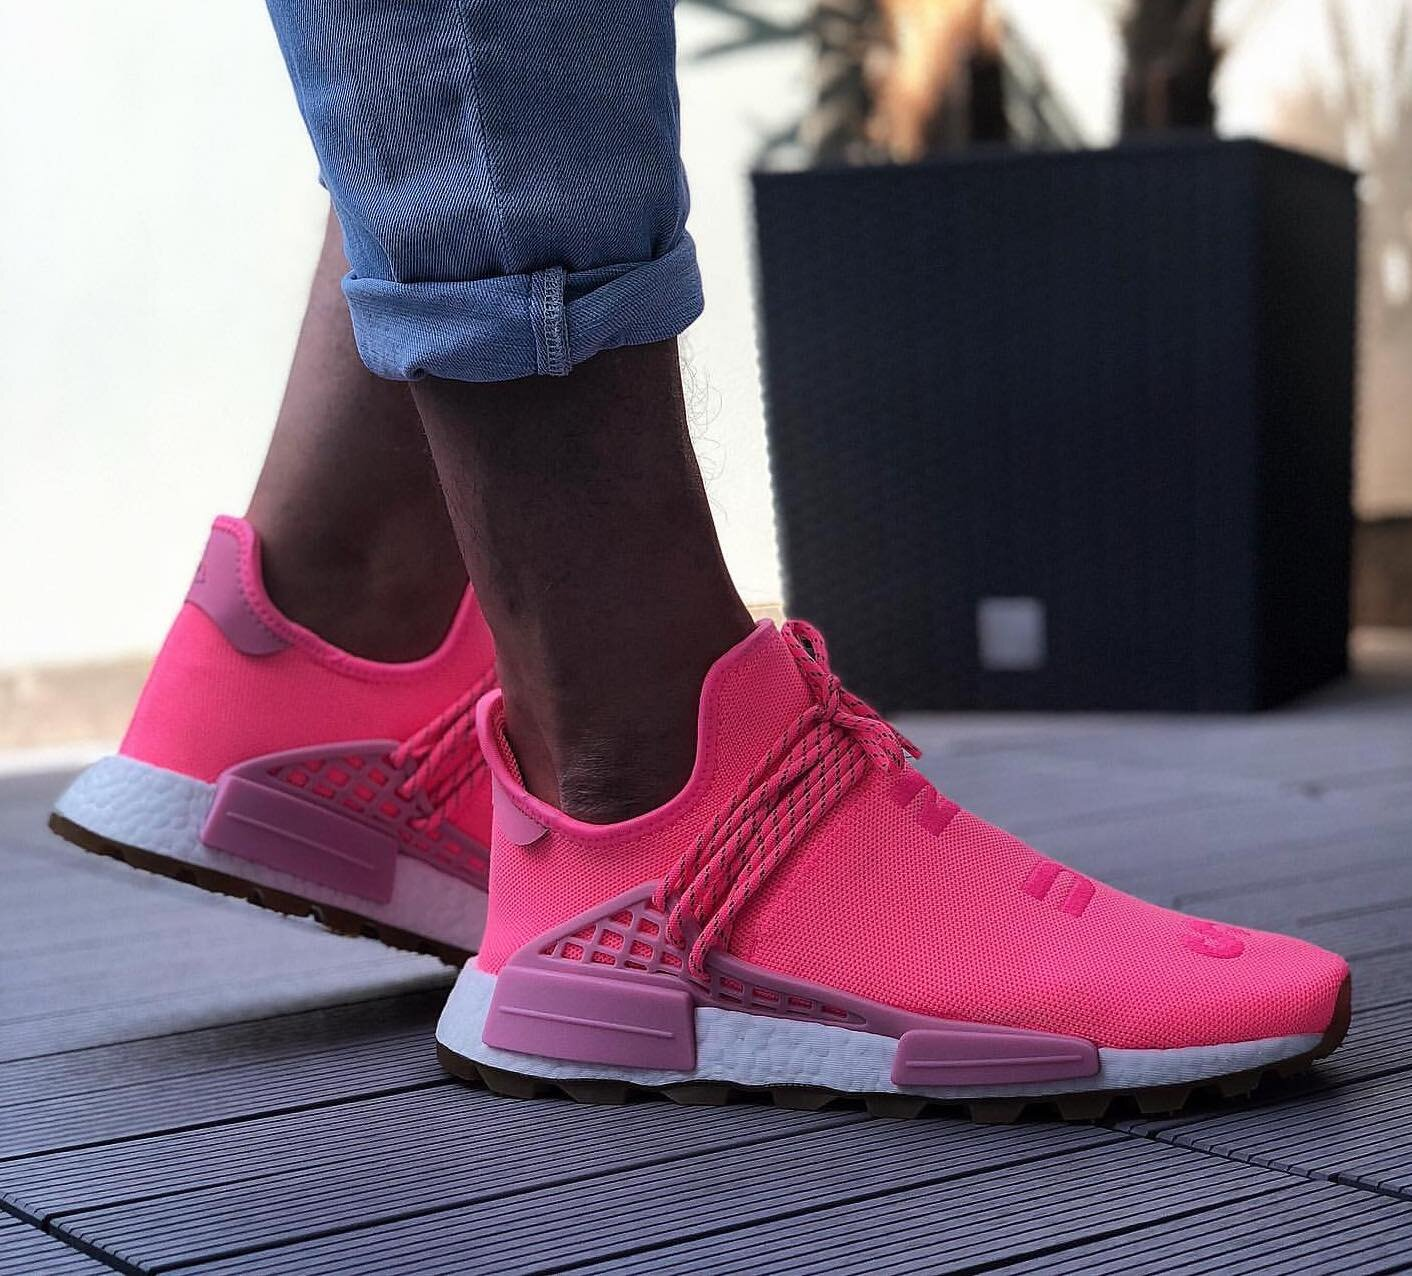 Details about Adidas NMD Hu Trail Pharrell Now Is Her Time Light Pink Size 12. EG7740 yeezy